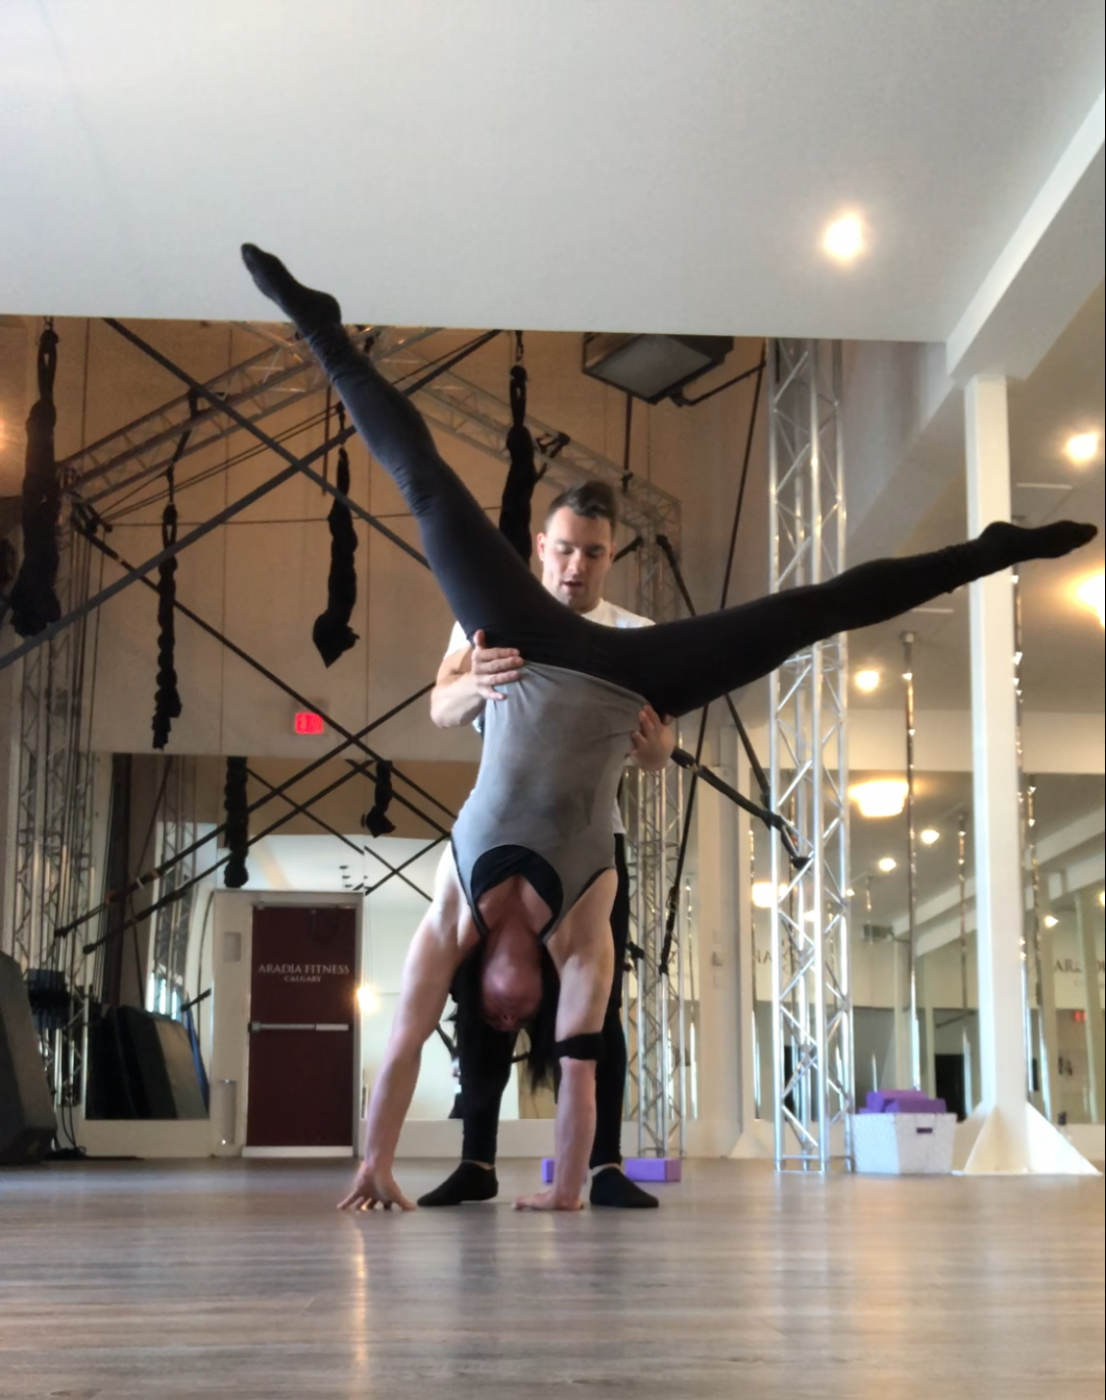 Cirque du Soliel artist and gymnast Sascha Bachmann taught classes at Aradia in 2019.